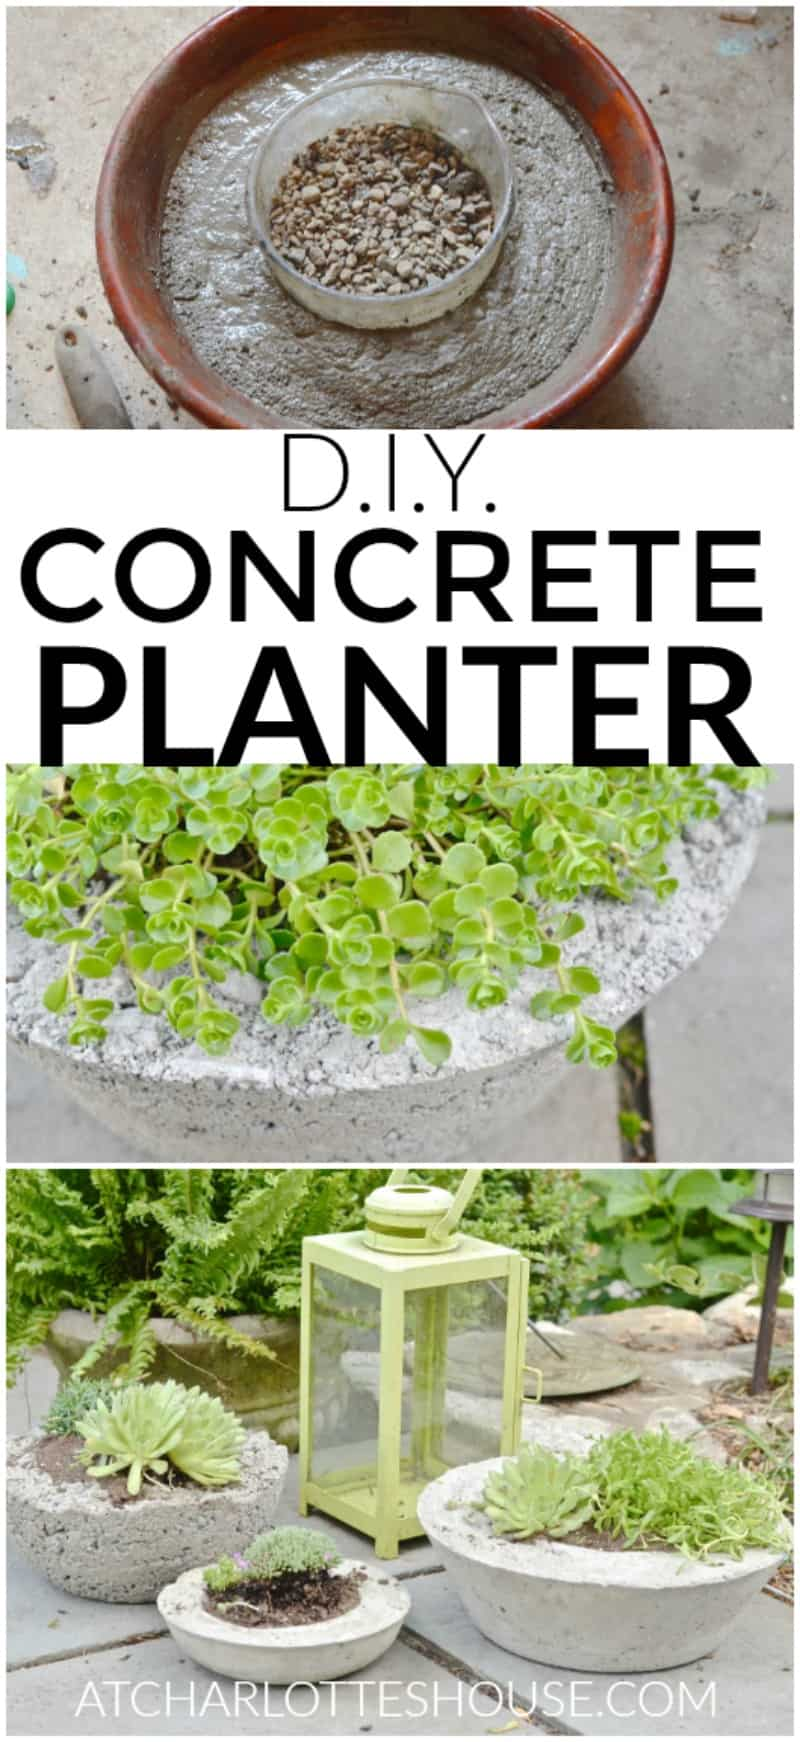 These concrete planters are hands down the favorite thing I've made for our backyard!